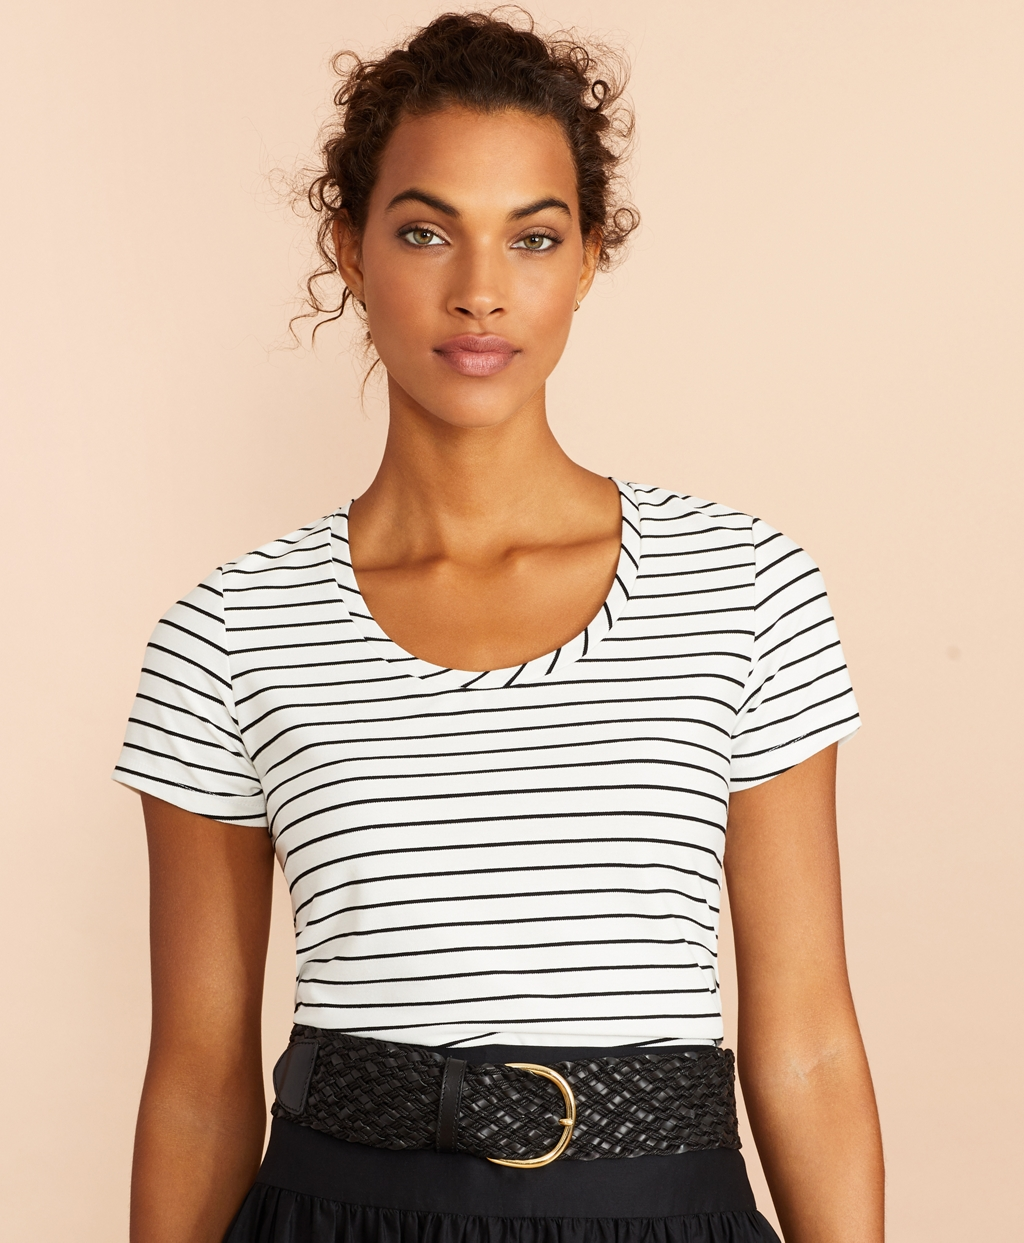 Sailor Dresses, Nautical Theme Dress, WW2 Dresses Brooks Brothers Womens Striped Scoop-Neck T-Shirt $38.00 AT vintagedancer.com